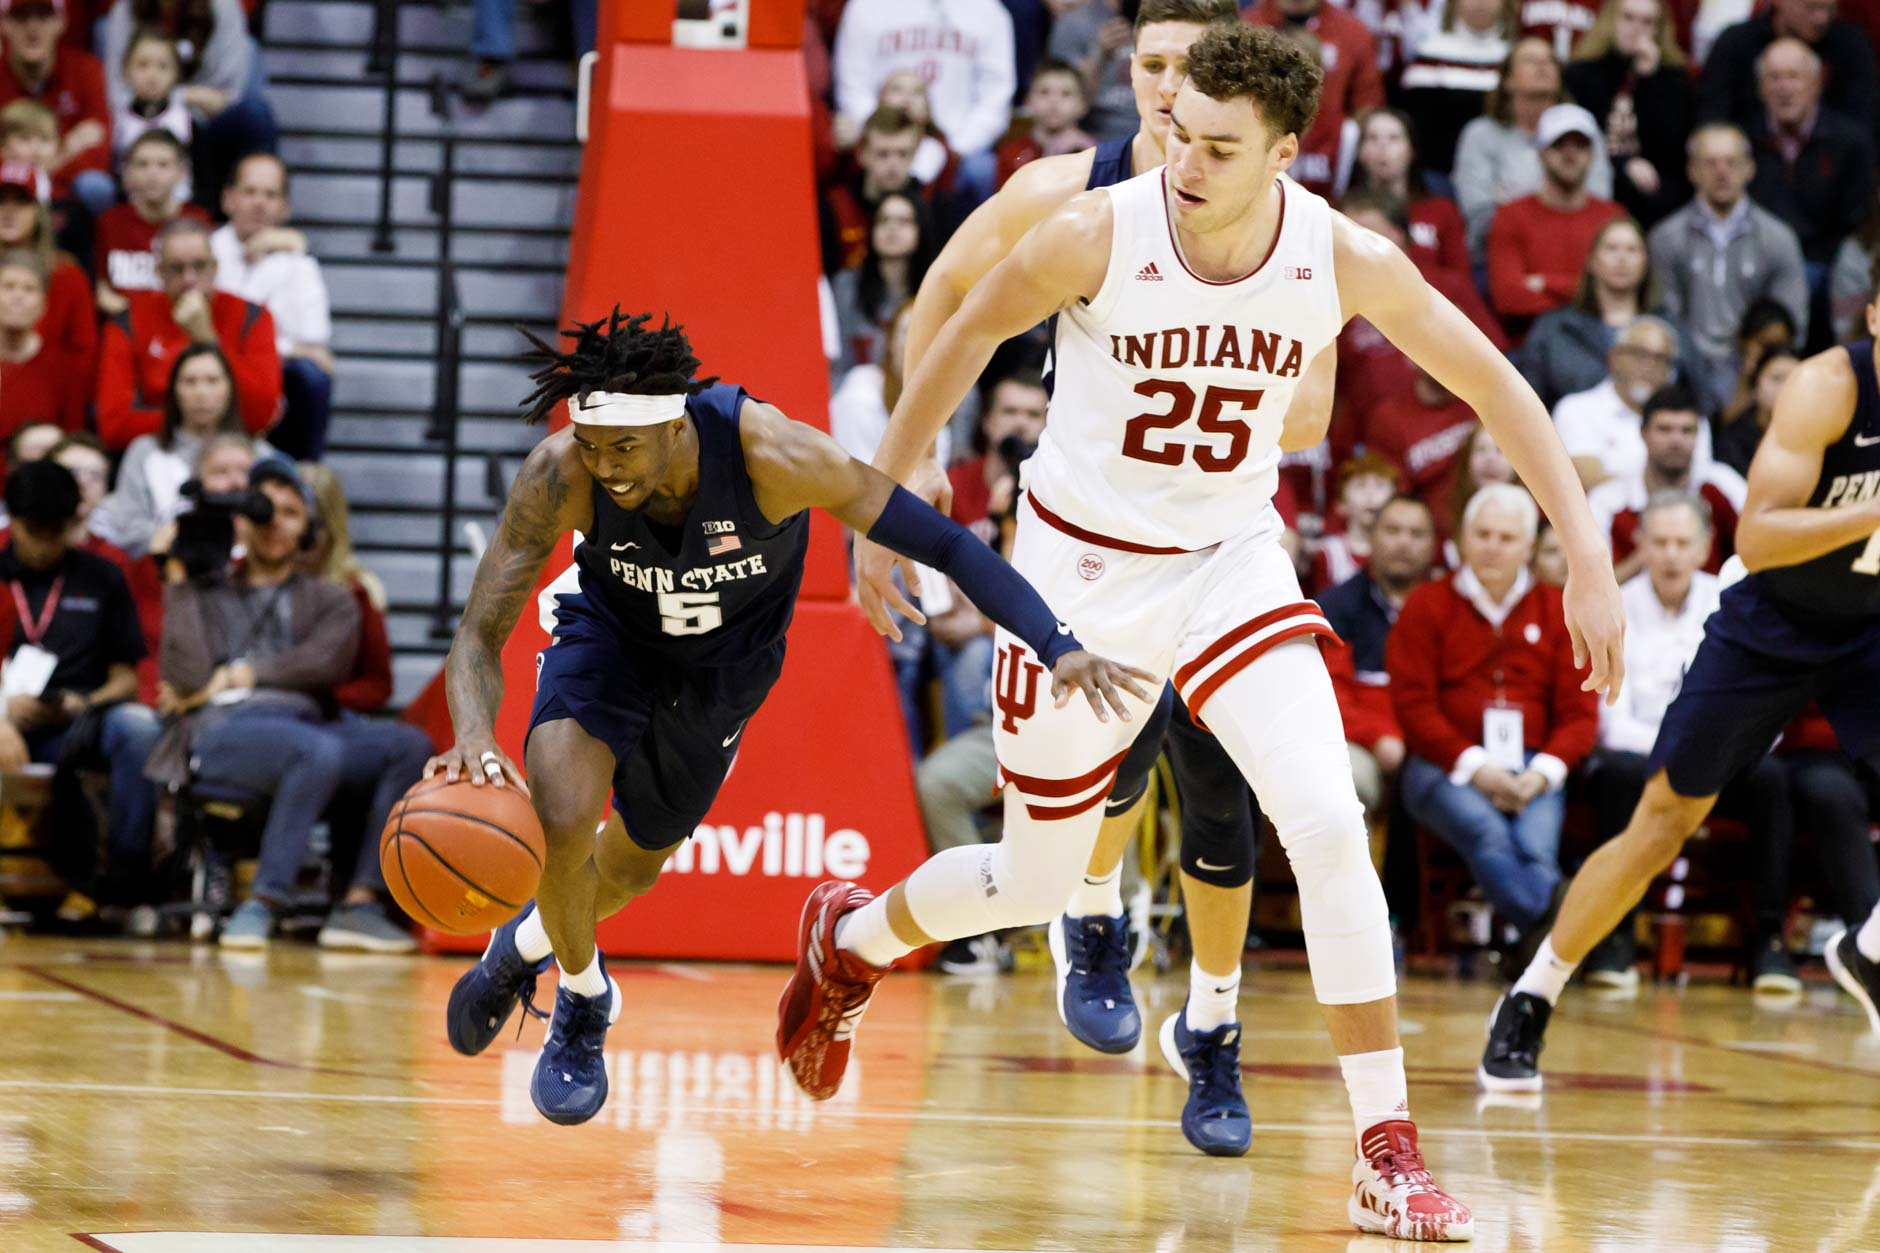 Penn State's Jamari Wheeler (5) is fouled by Indiana's Race Thompson (25) during a NCAA men's basketball game at Simon Skjodt Assembly Hall in Bloomington, Indiana on Sunday, Feb. 23, 2020. (Photo by James Brosher)